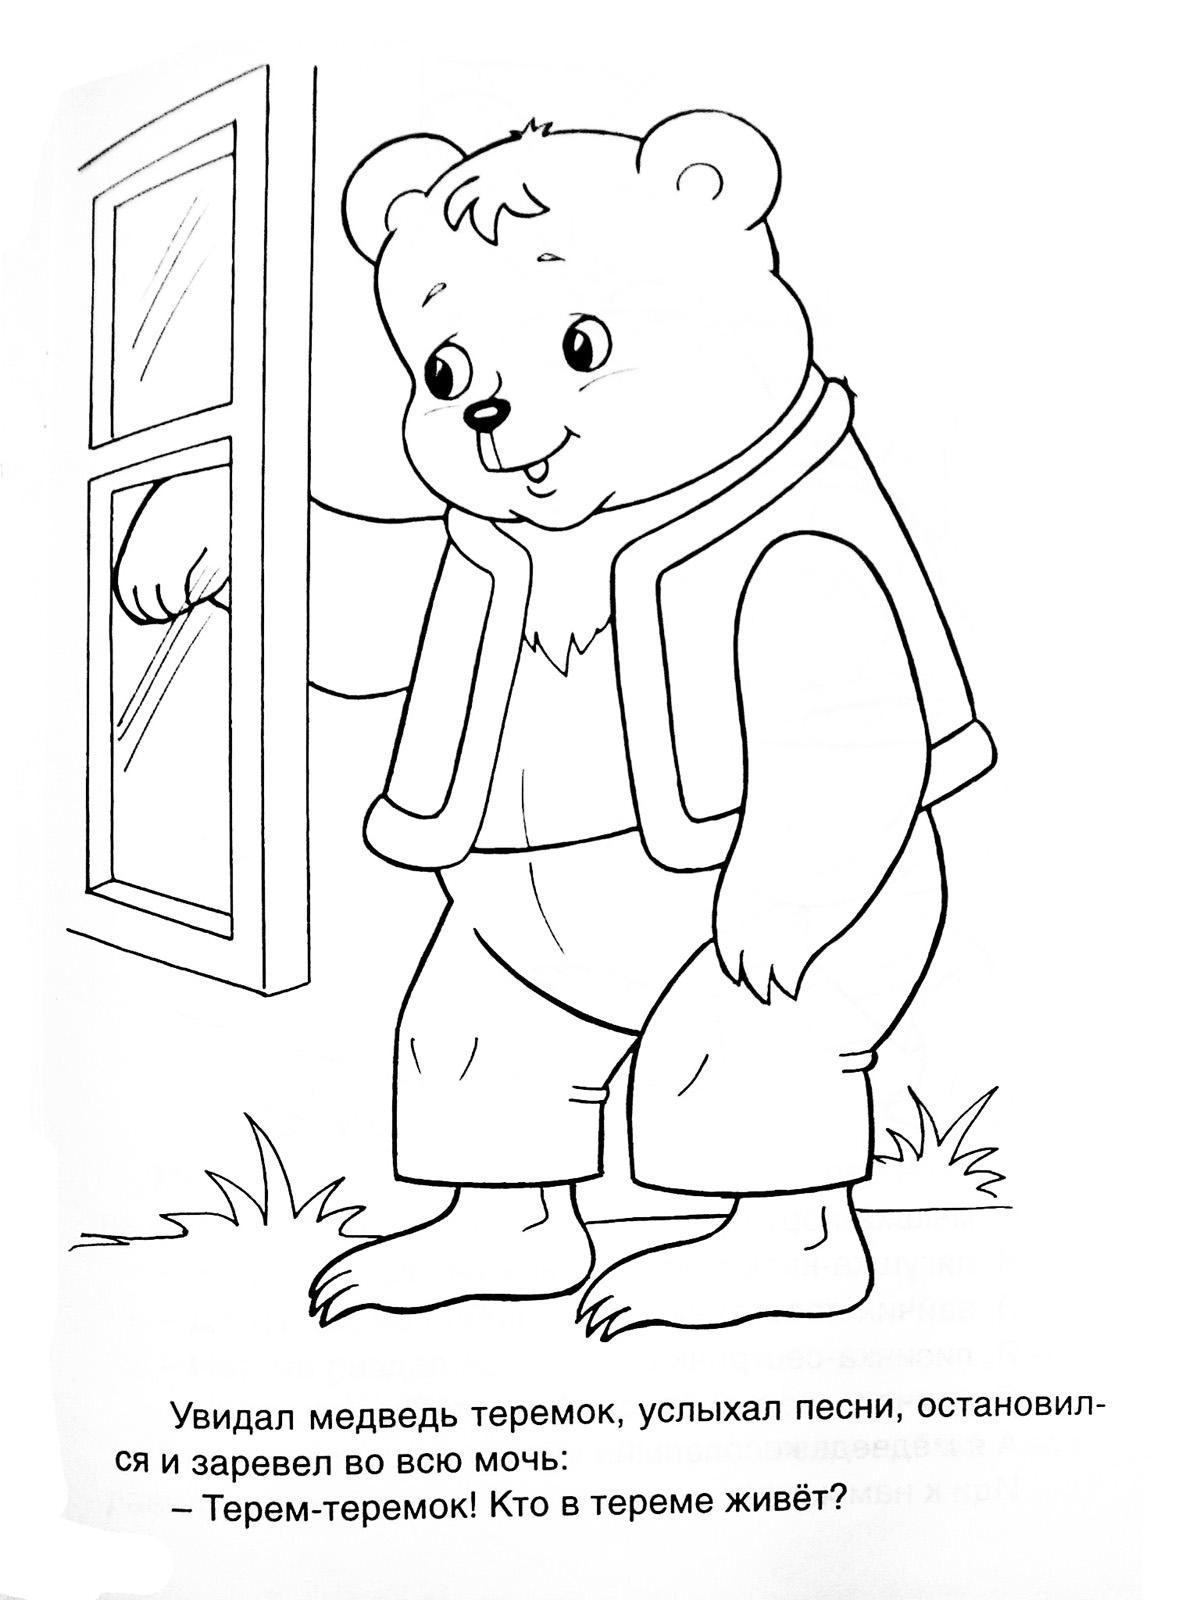 Coloring coloring pages to the tale of three bears Bear near the window, a fairy tale coloring pages